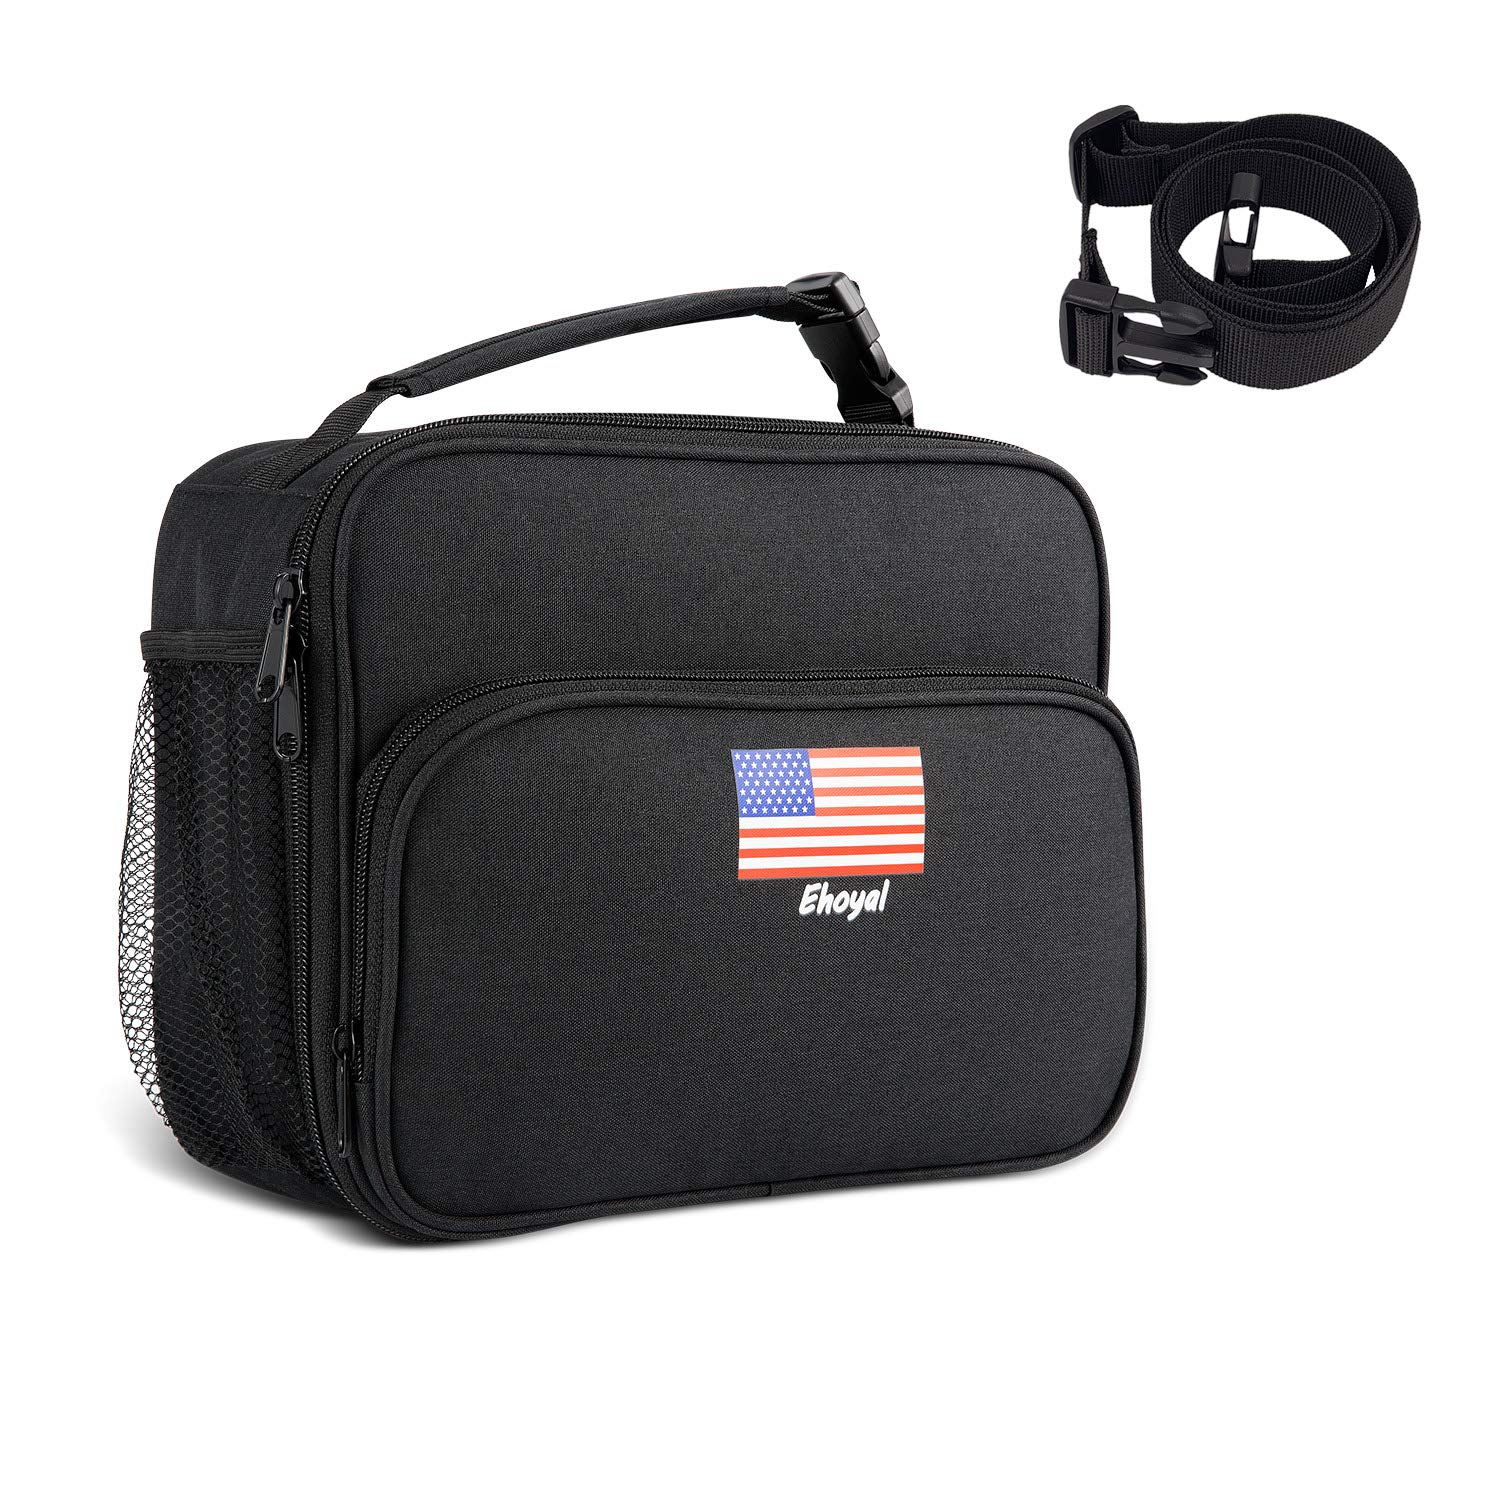 Lunch Bags Insulated Lunch Box: Waterproof Square Freezer Lunch Boxes Keep Food Fresh Durable & Reusable - Handbag & Backpack Gift for Adults, Kids, Boys, Men, Women, Girls - Black